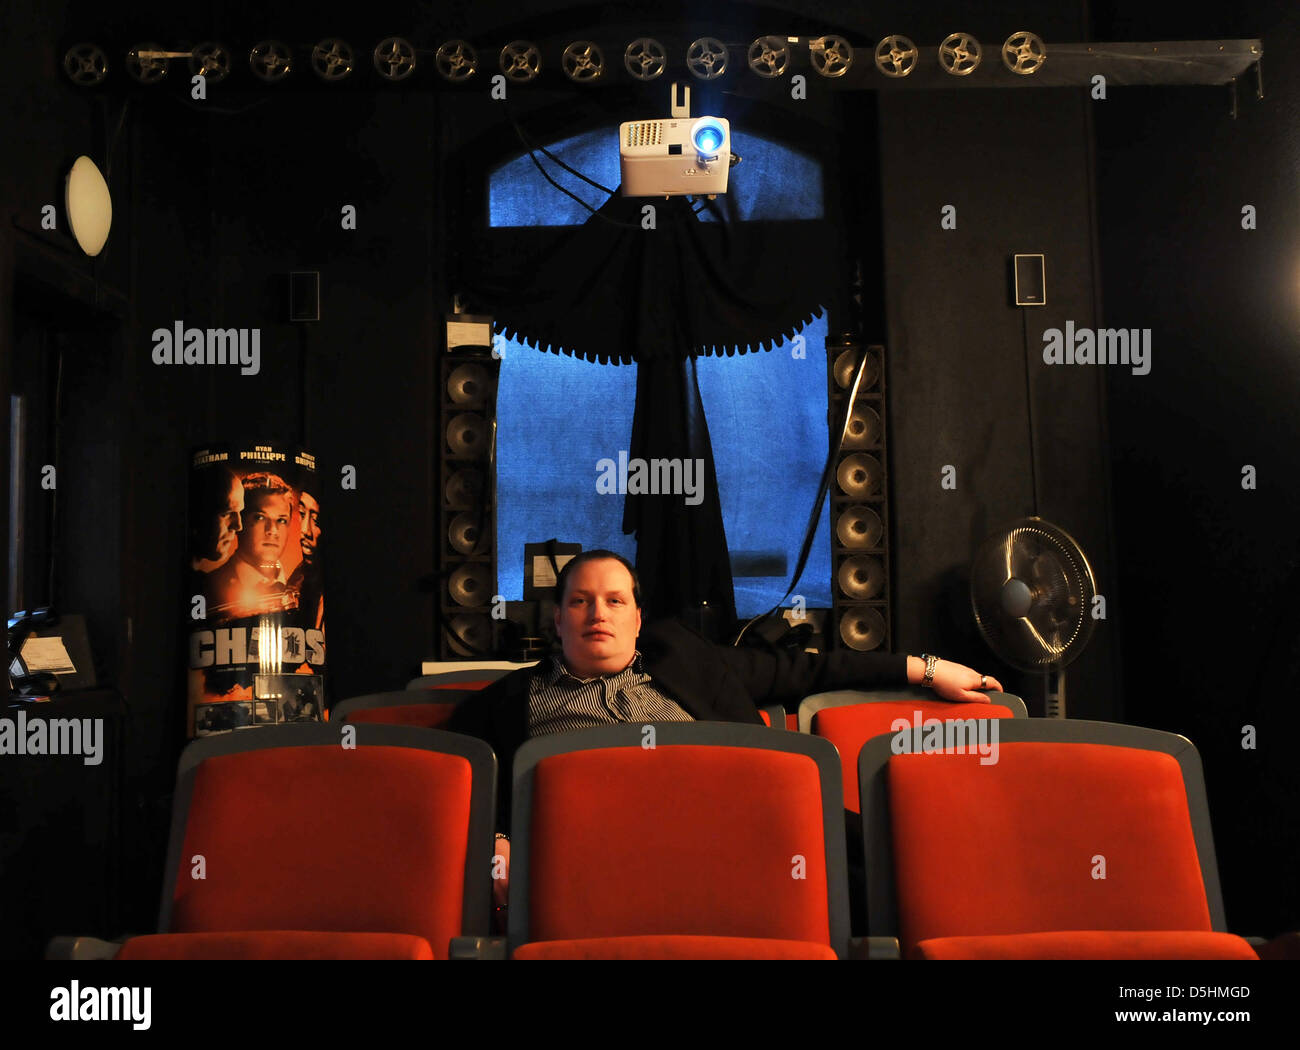 cinema sweets stock photos cinema sweets stock images alamy johannes gerhardt sits in the world s smallest commercial cinema in radebeul 11